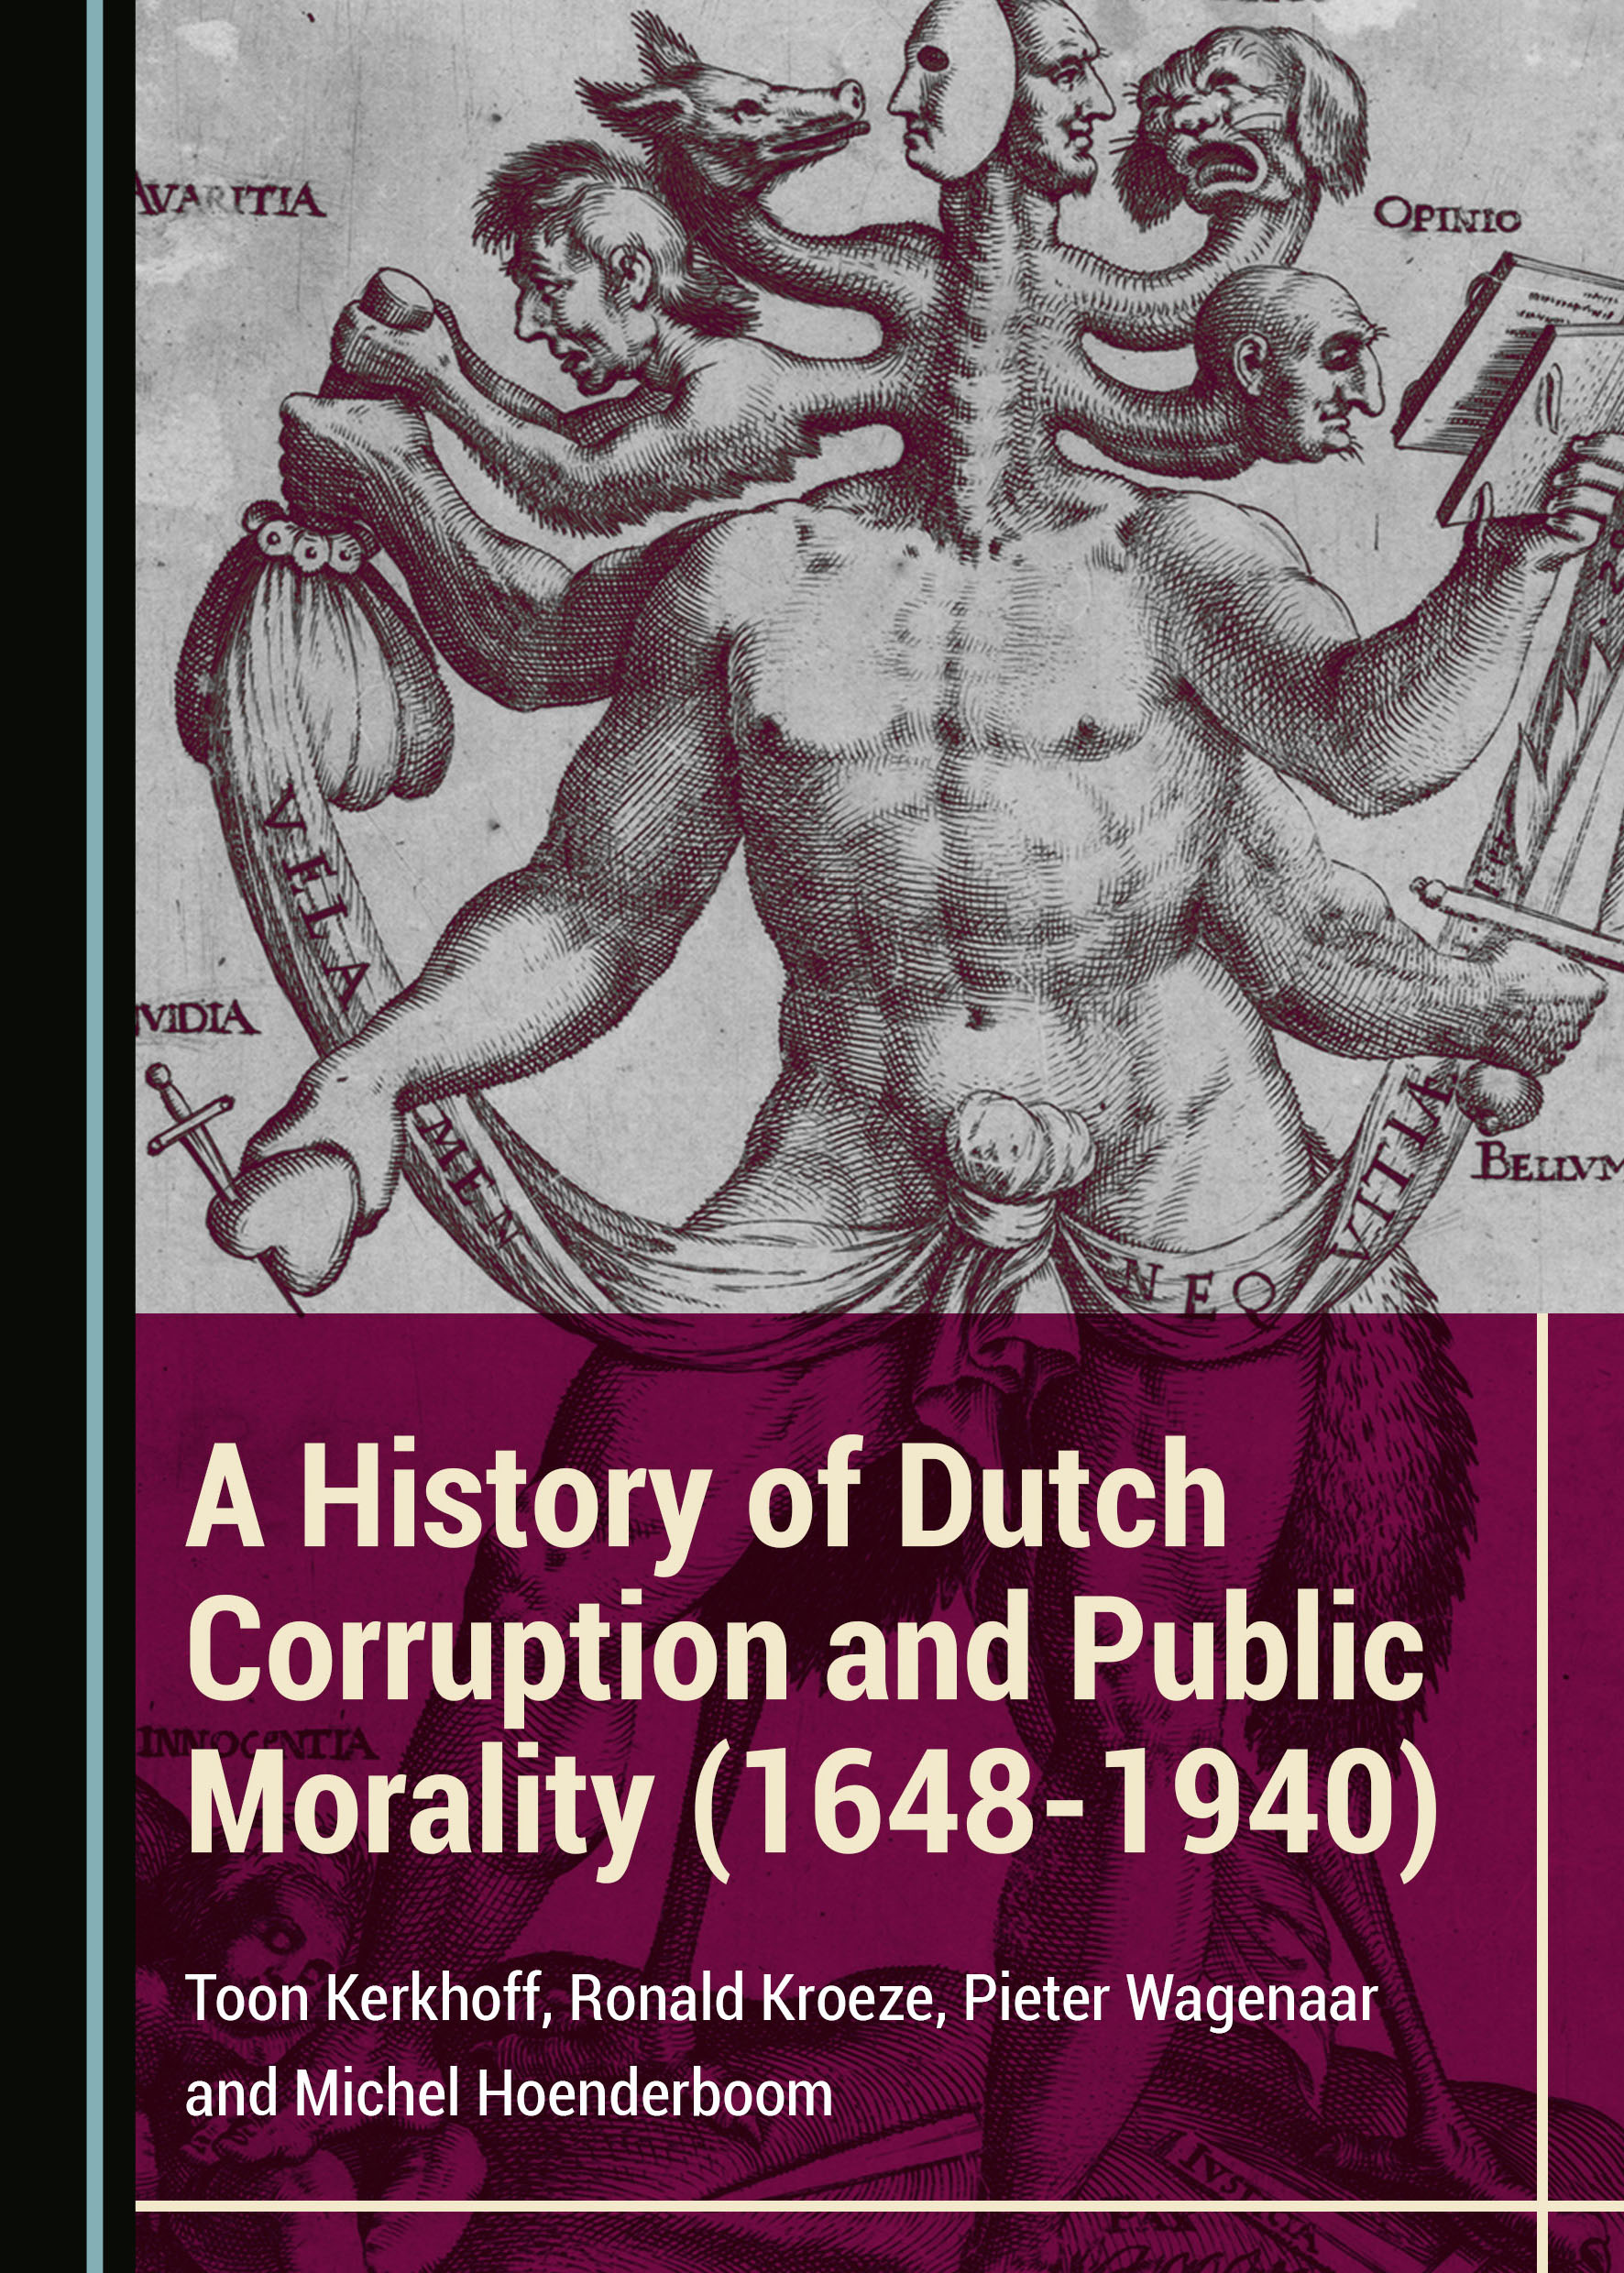 A History of Dutch Corruption and Public Morality (1648-1940)